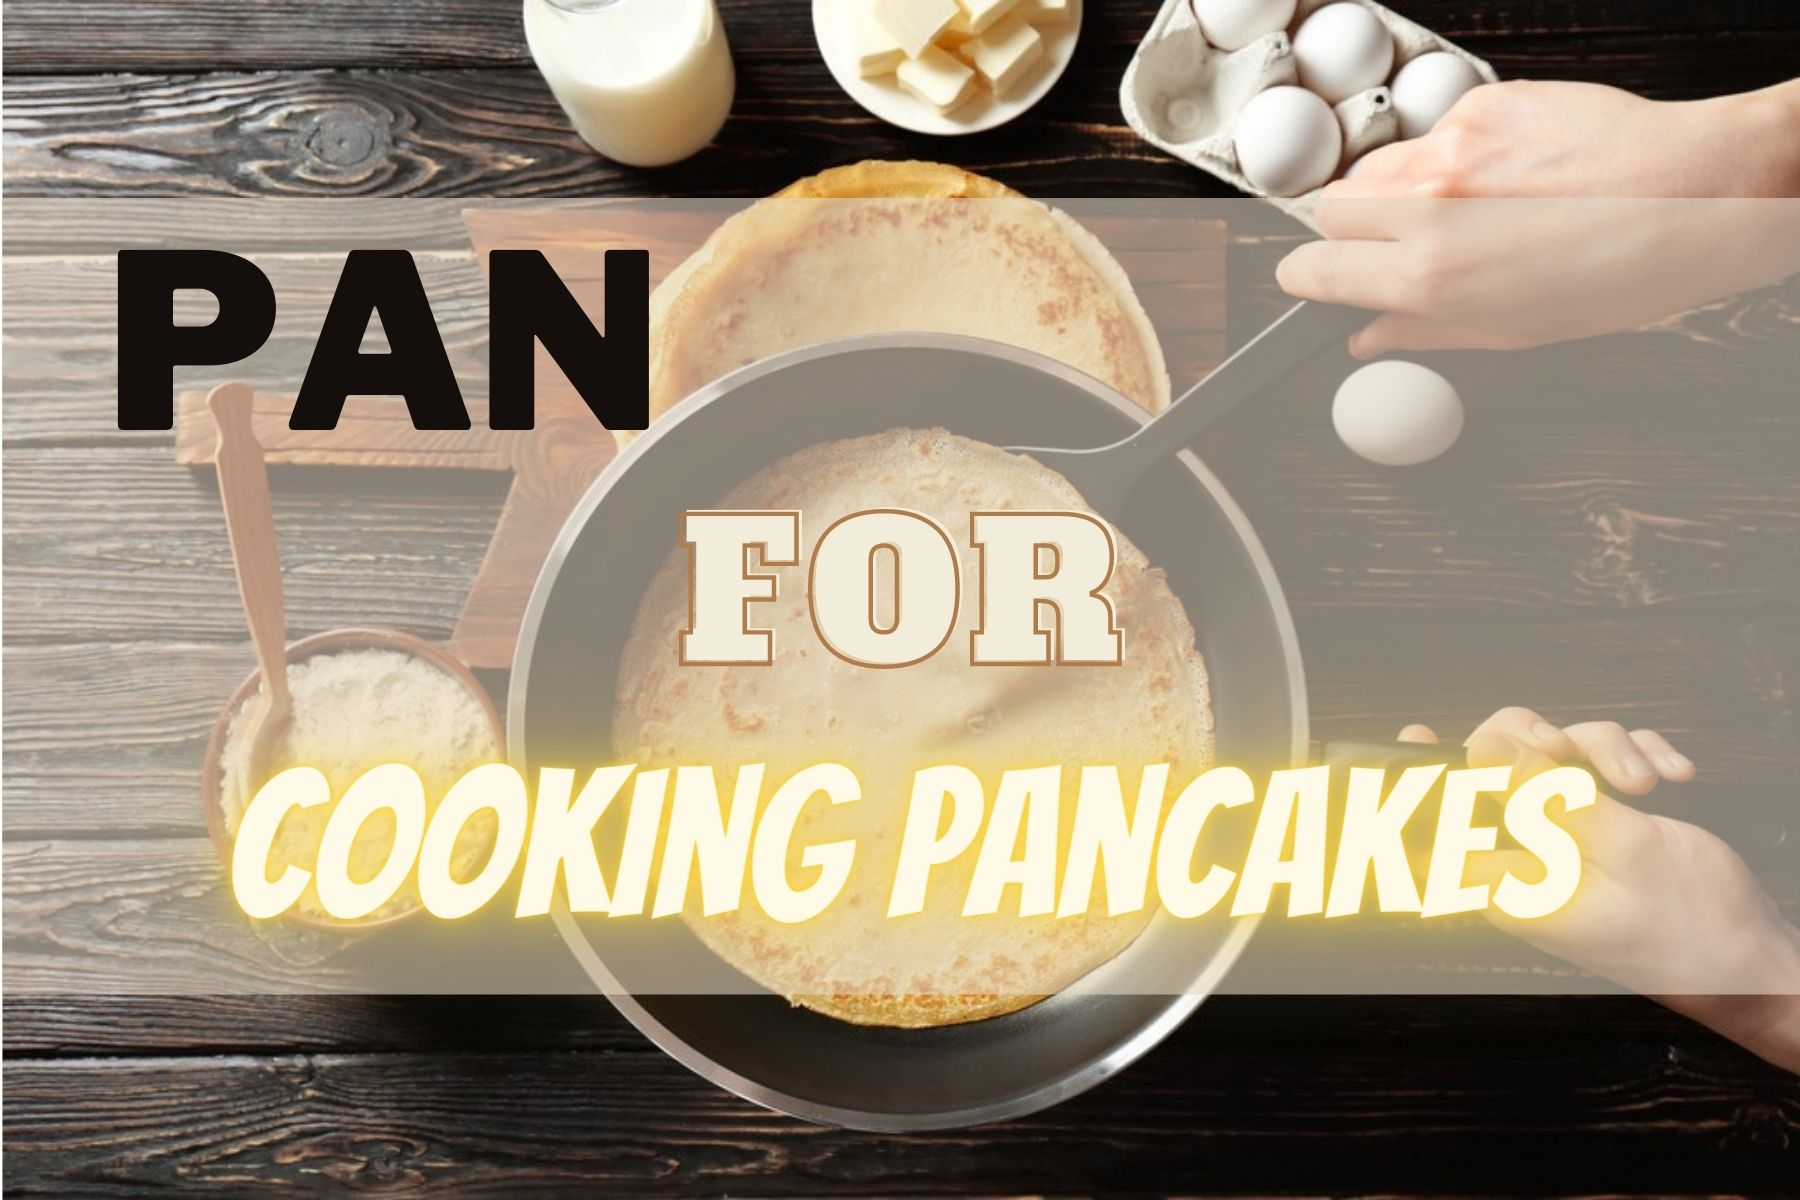 Best Pan For Cooking Pancakes